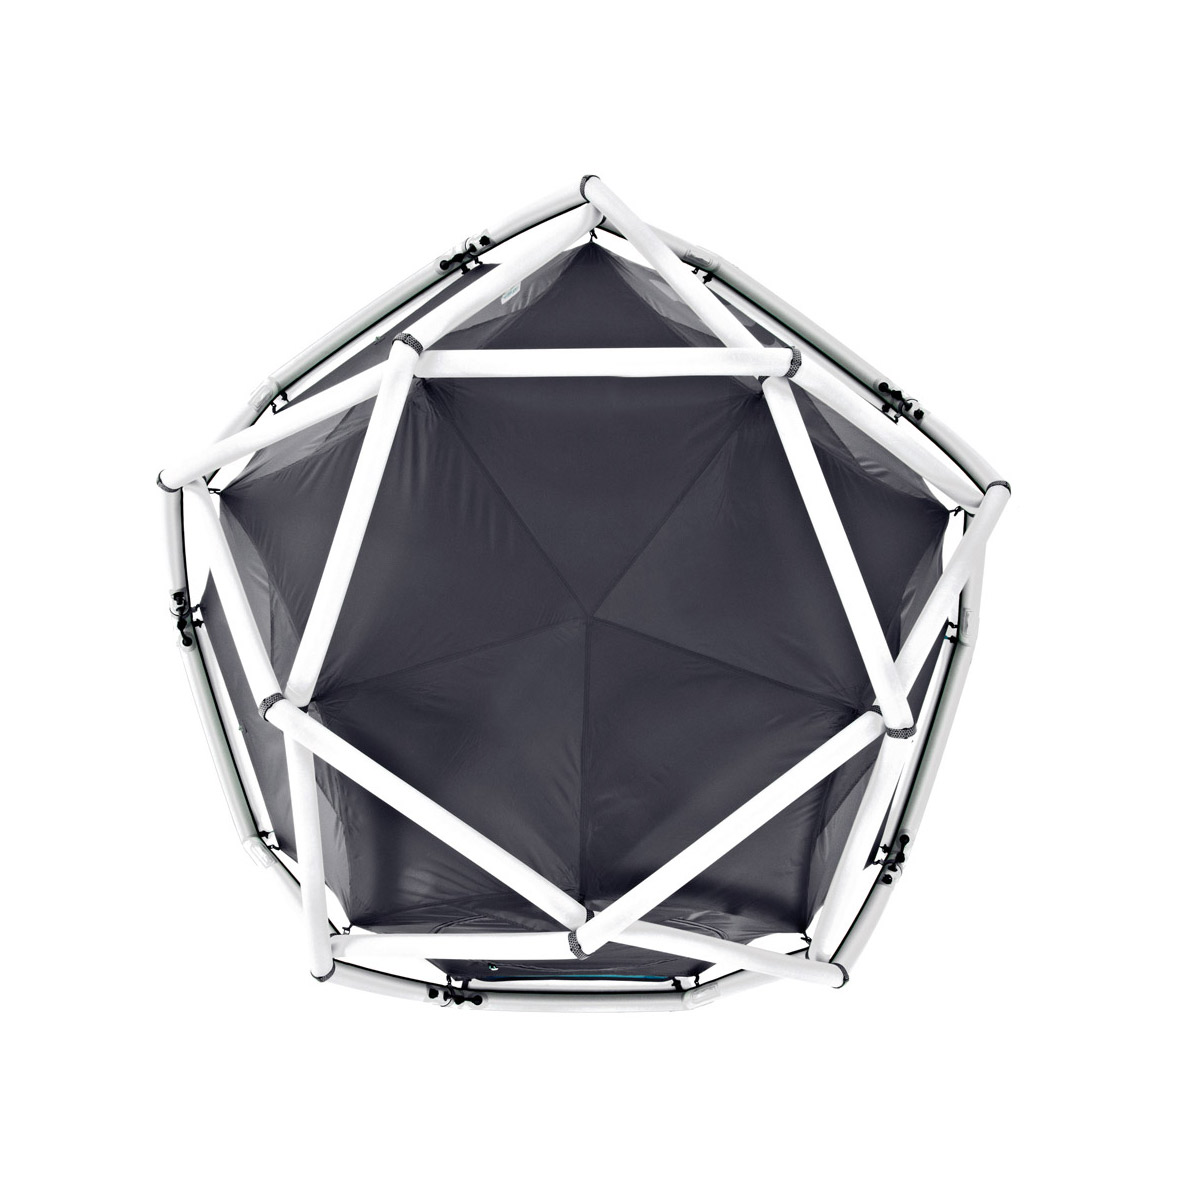 HeimPlanet Cave Inflatable Geodesic Dome Tent The